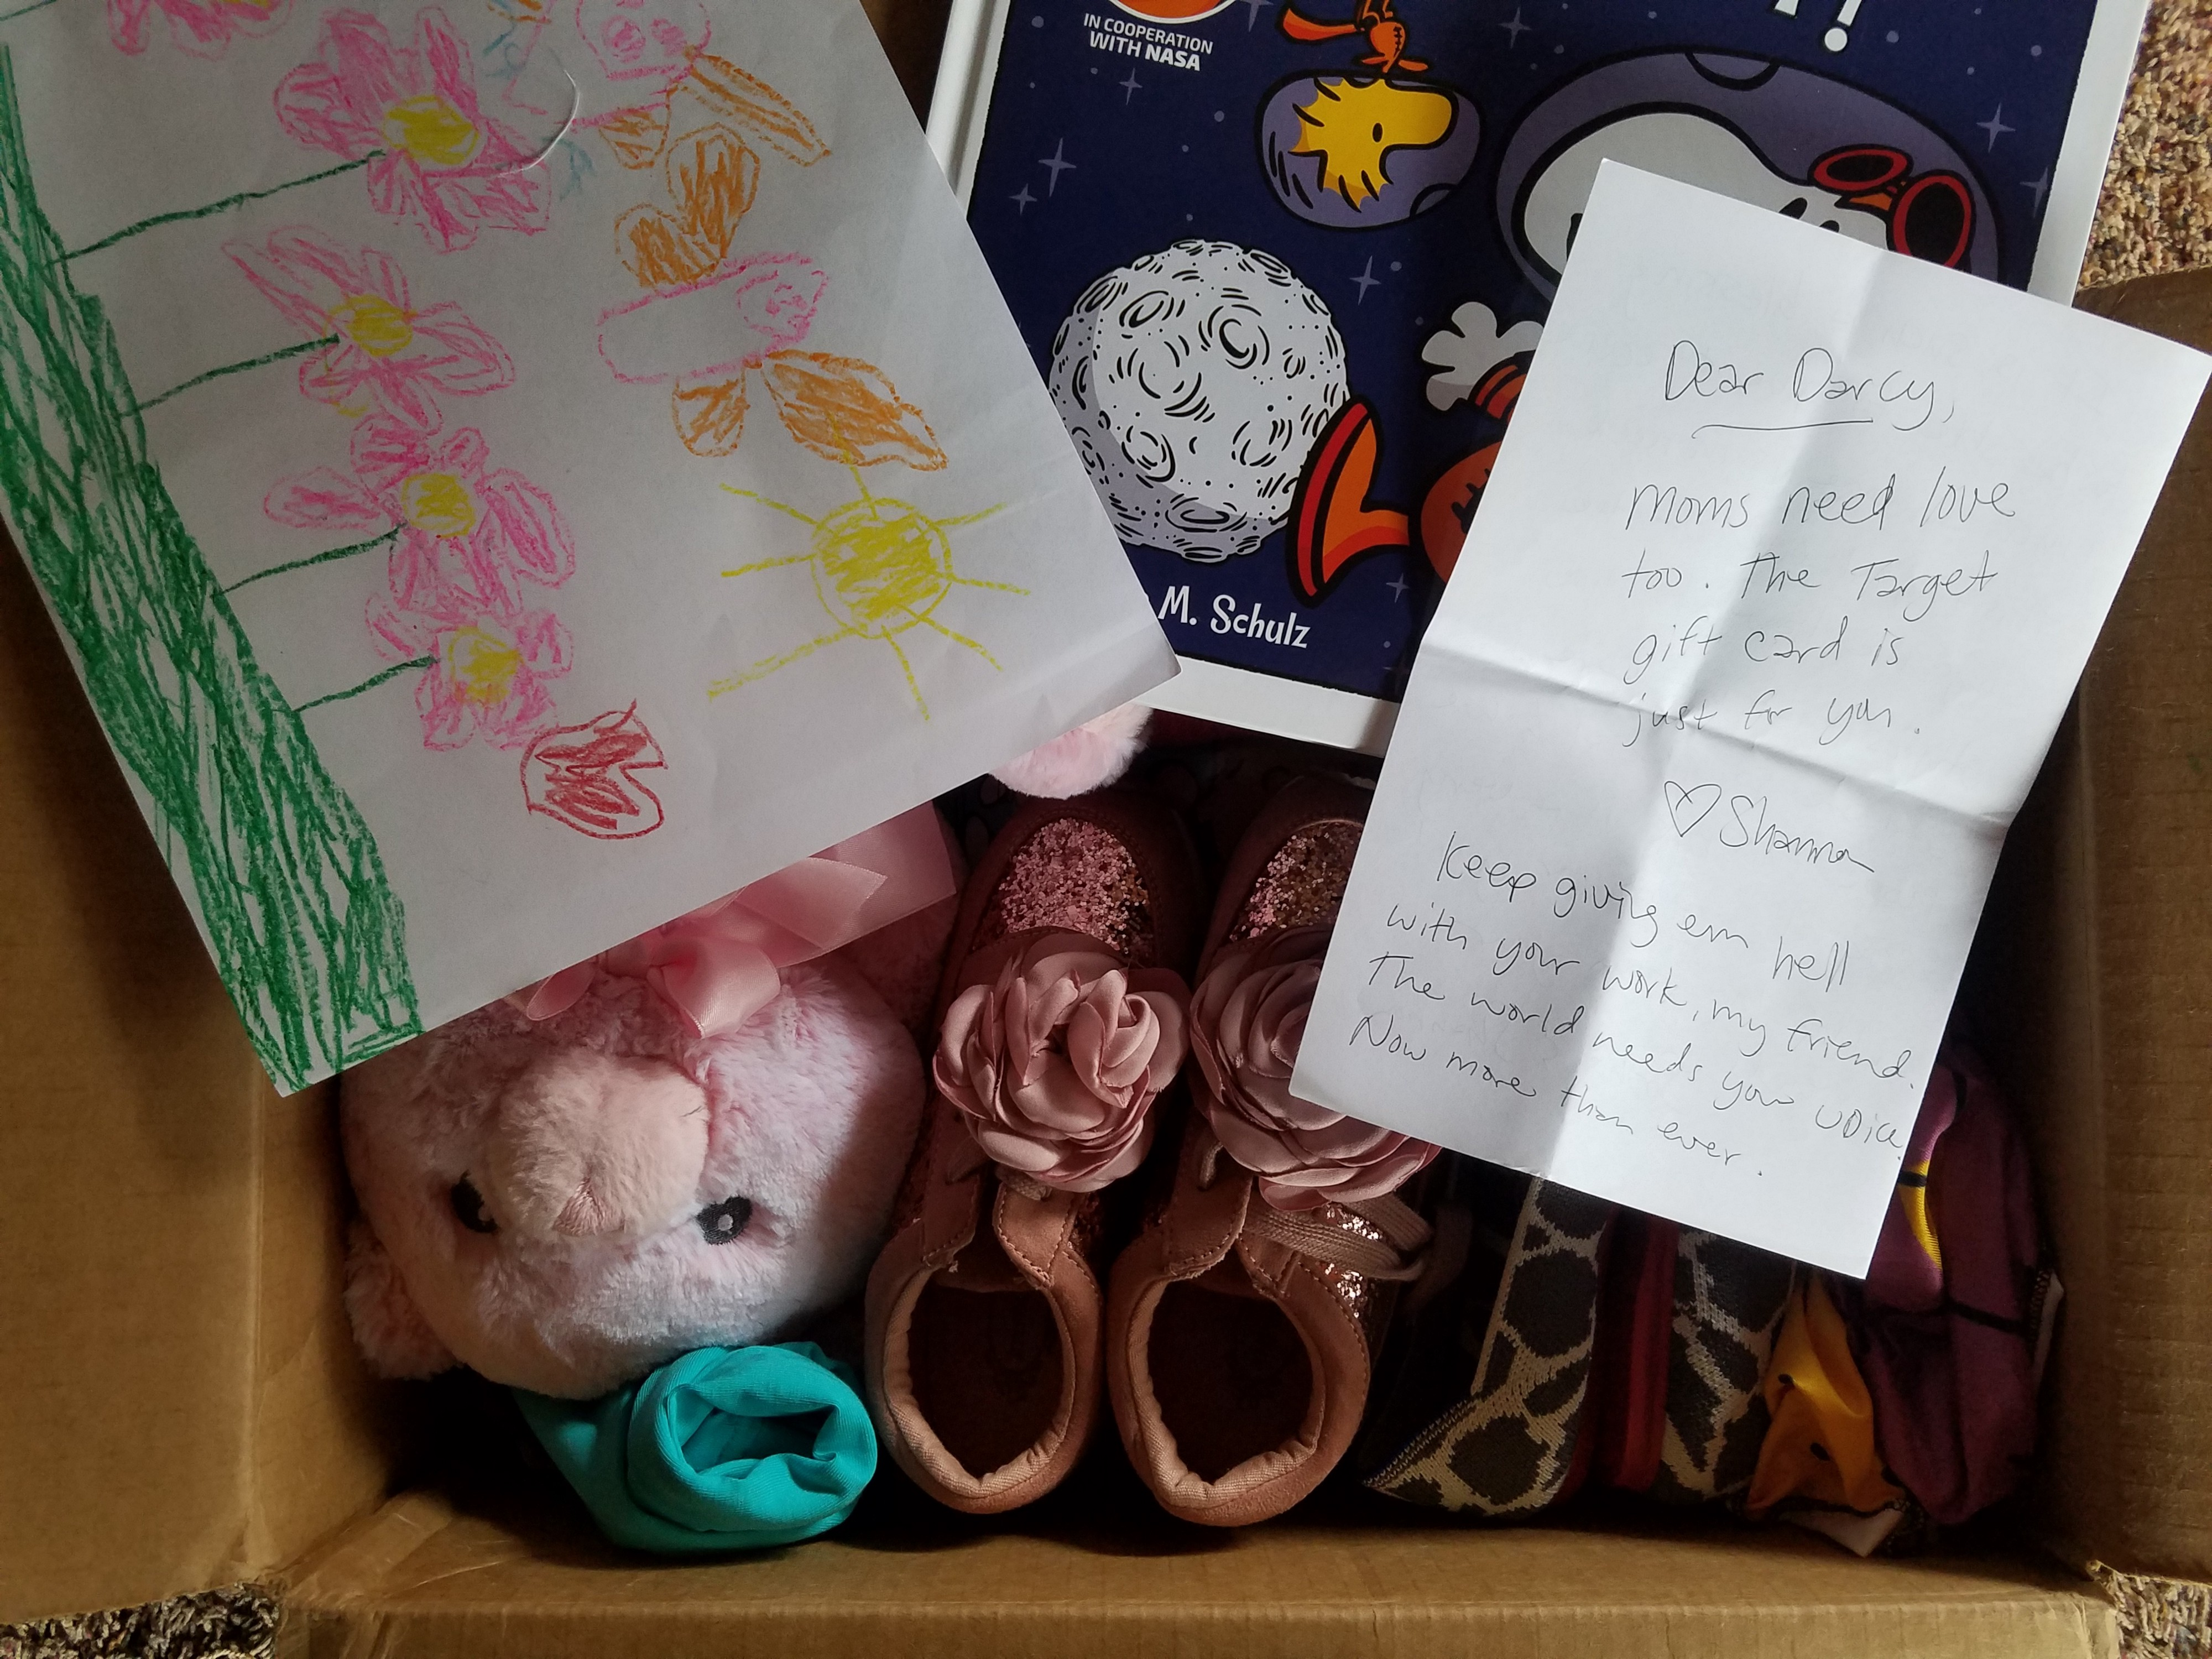 Cardboard box full of goodies: shoes, stuffed bunny, kid art, children's book about space